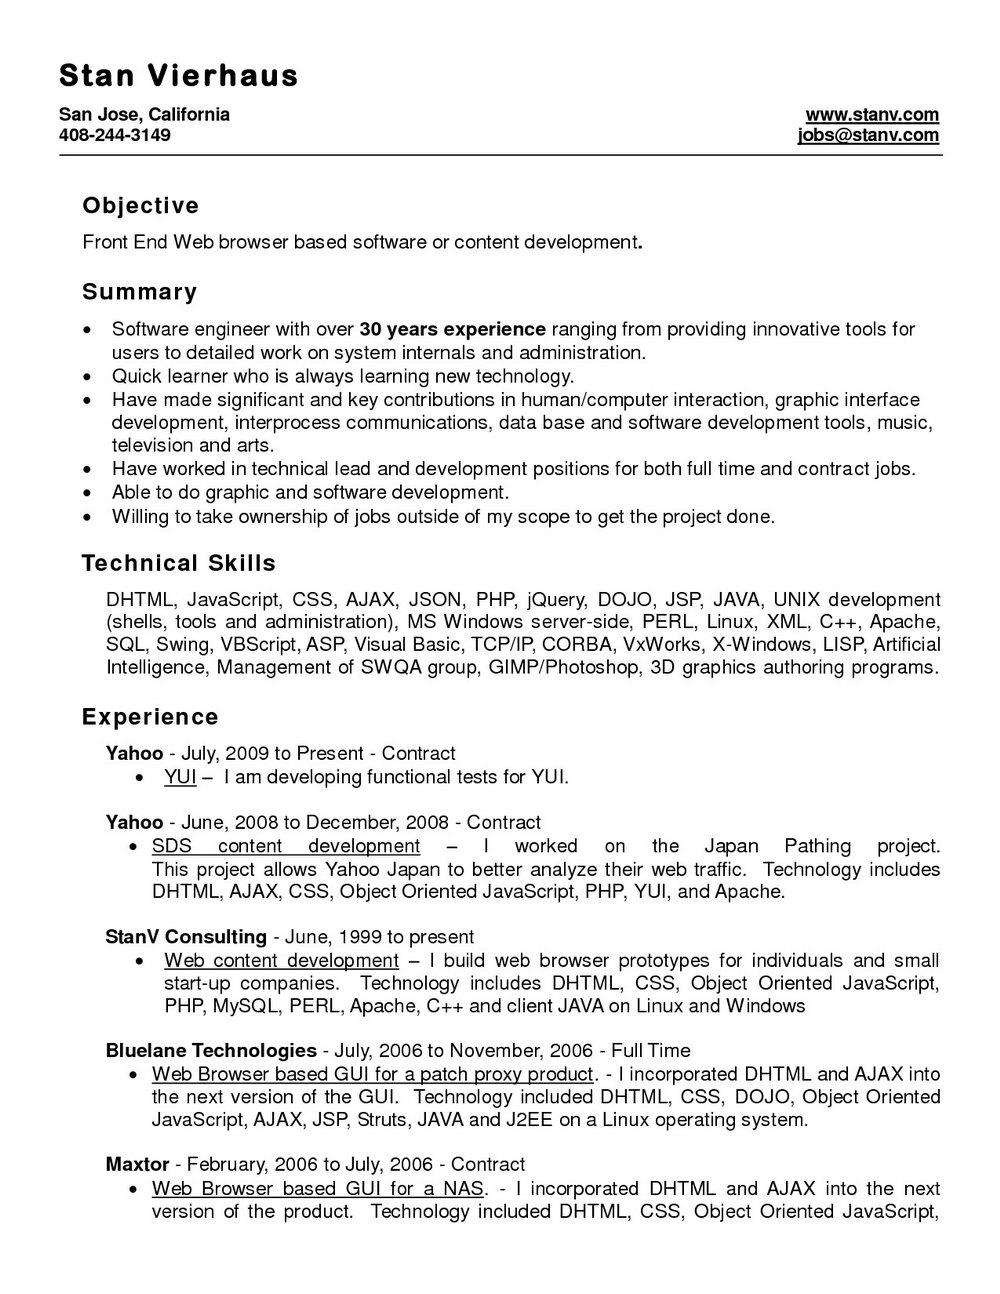 Resume Format For Fresher Free Download In Ms Word 2007